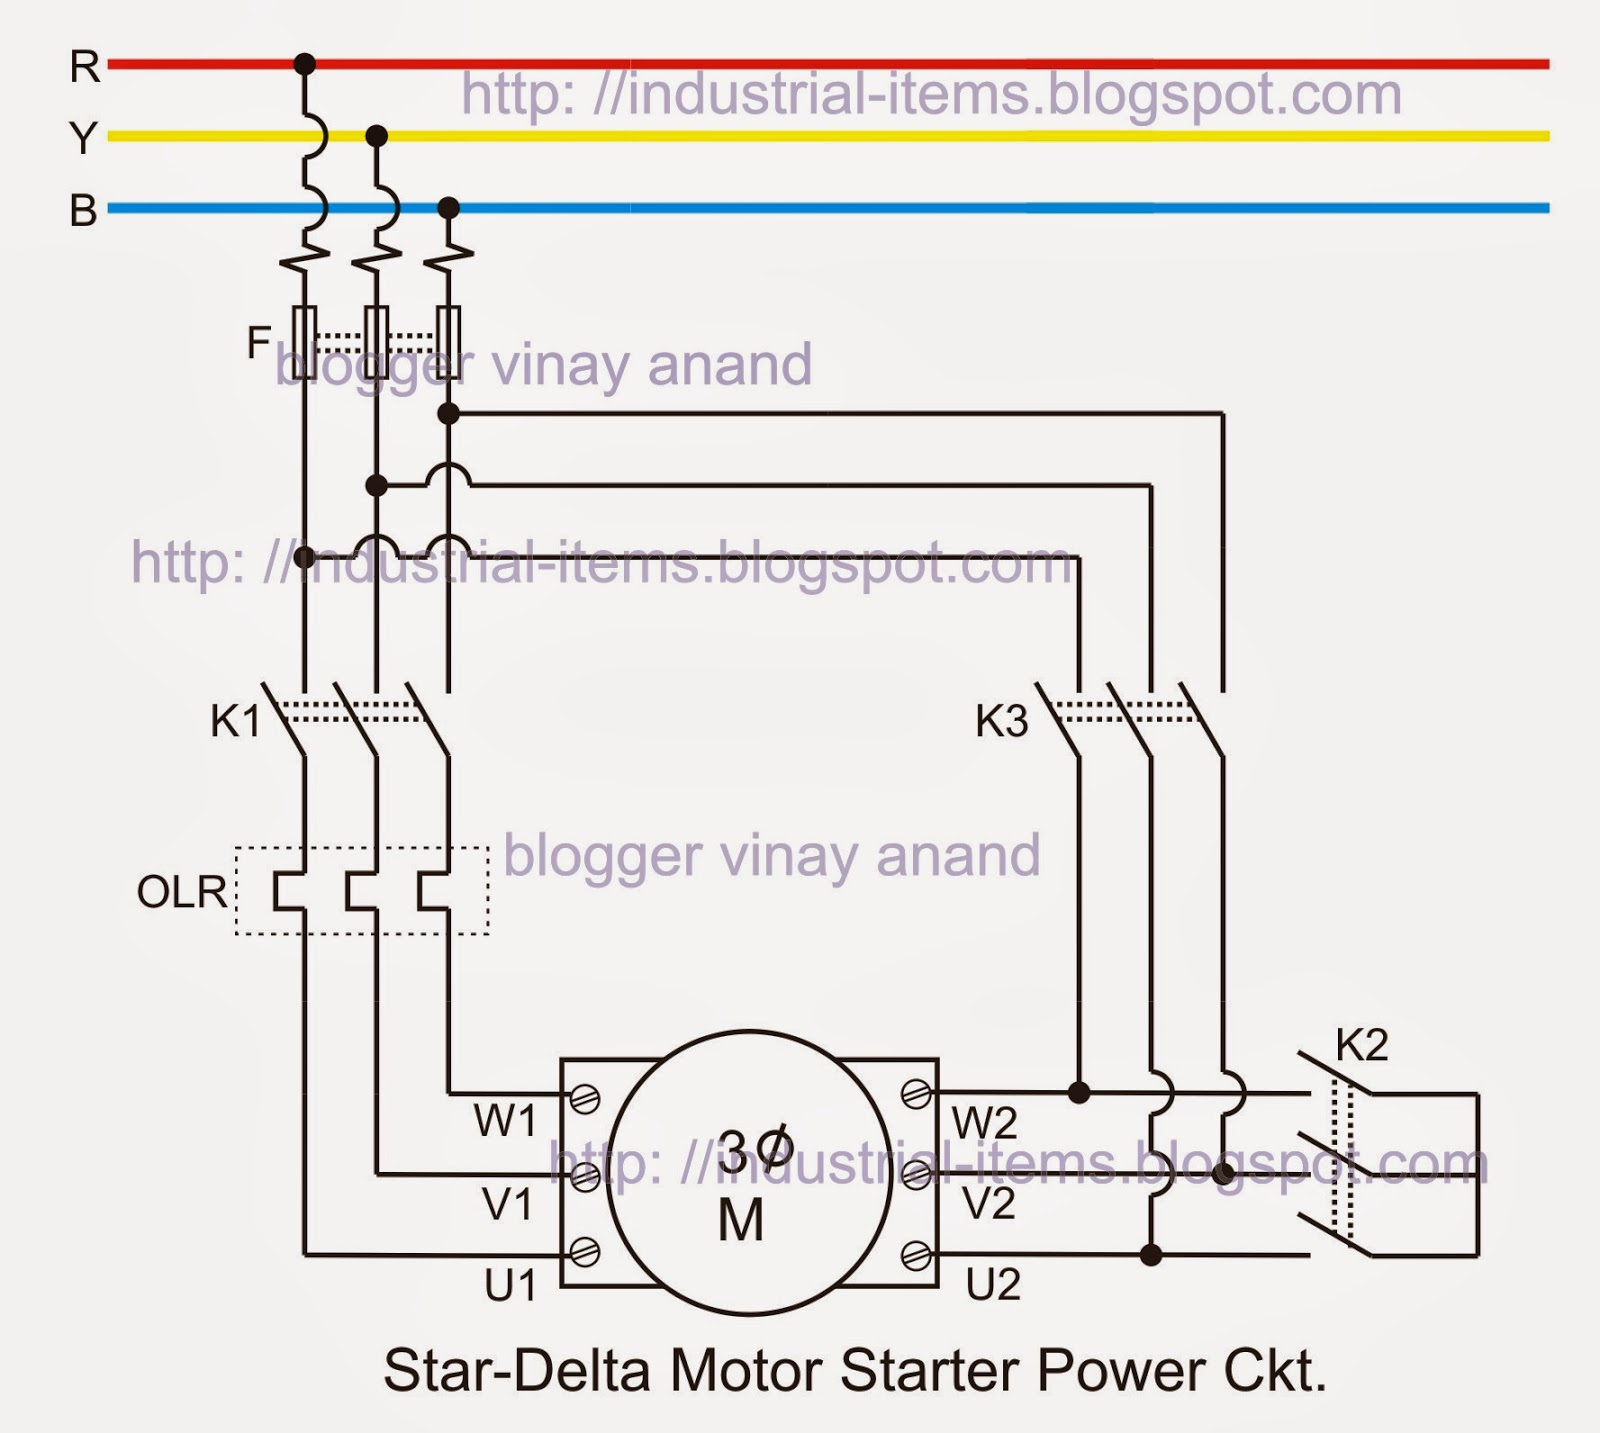 Star+Delta+power+Ckt. gk, current affairs, tutorials & articles star delta starter theory part winding start motor wiring diagram at readyjetset.co